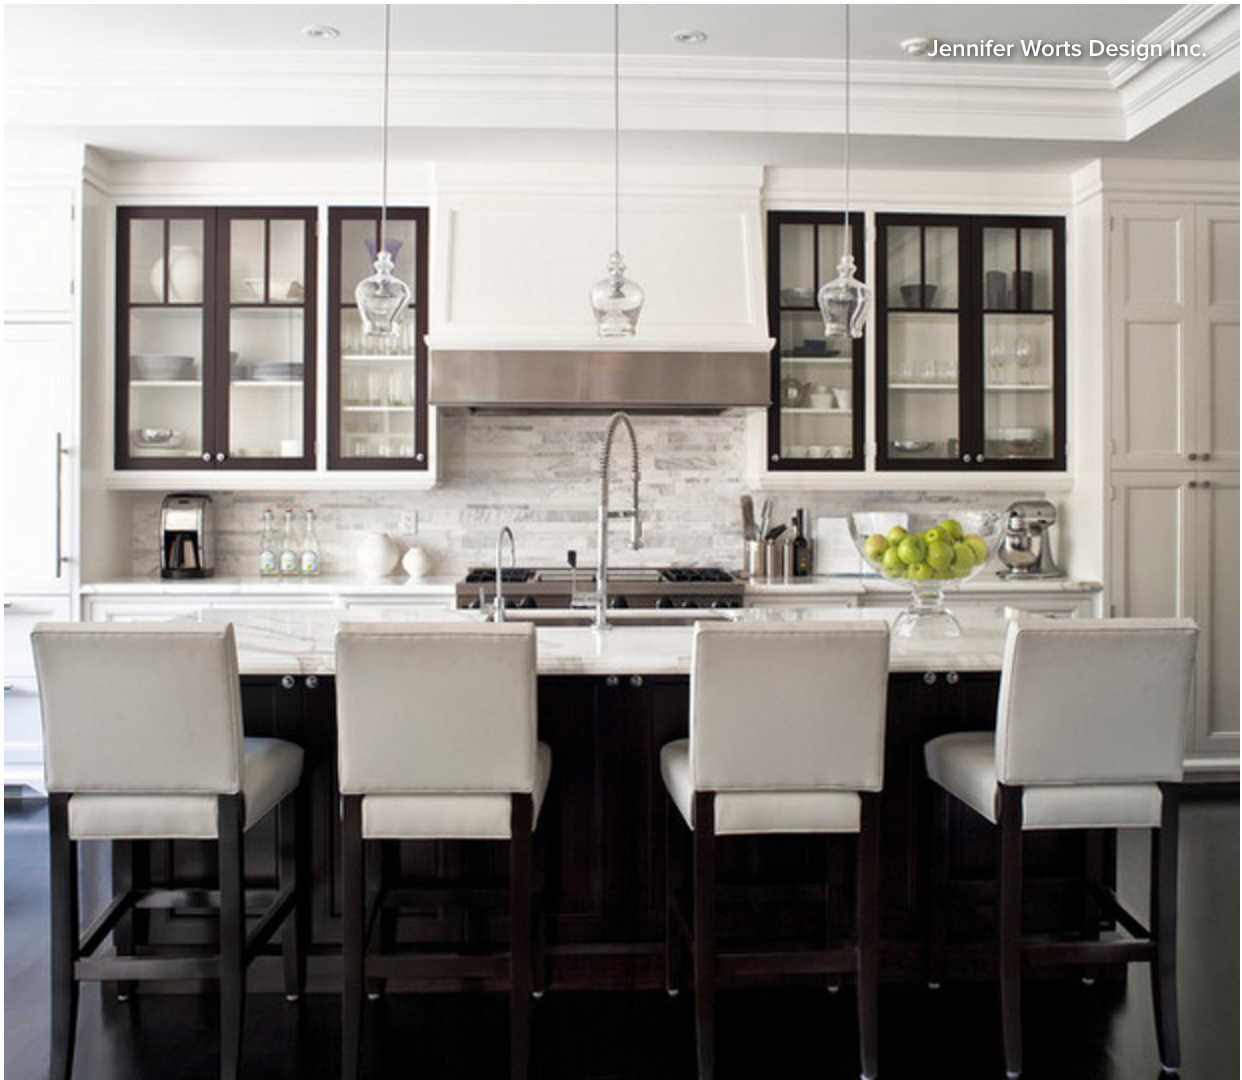 White Kitchen Cabinets With Black Doors Elegant tuxedo kitchen, especially love the white cabinets with